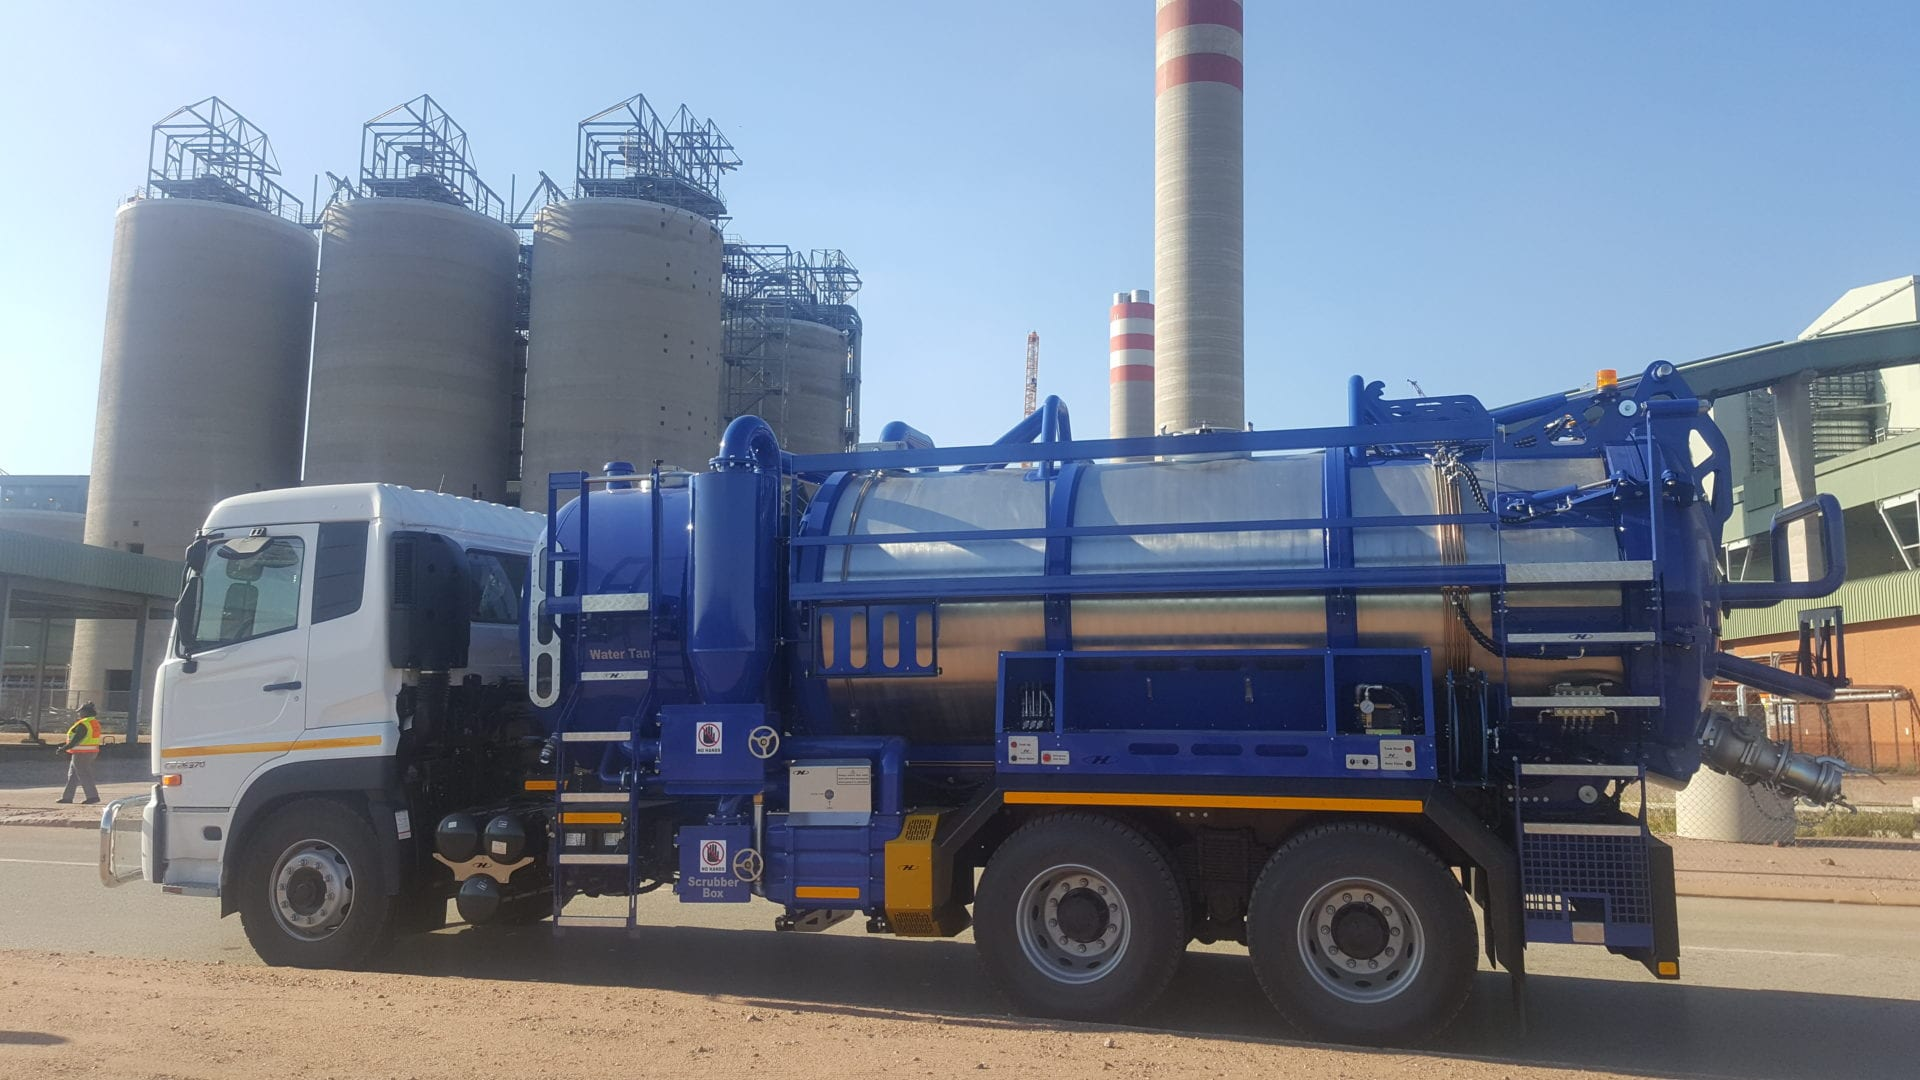 Cleaning And Maintenance Specialist Mpumalanga Renovating Services MRMS Has Recently Standardised On Rental Machines From Goscor